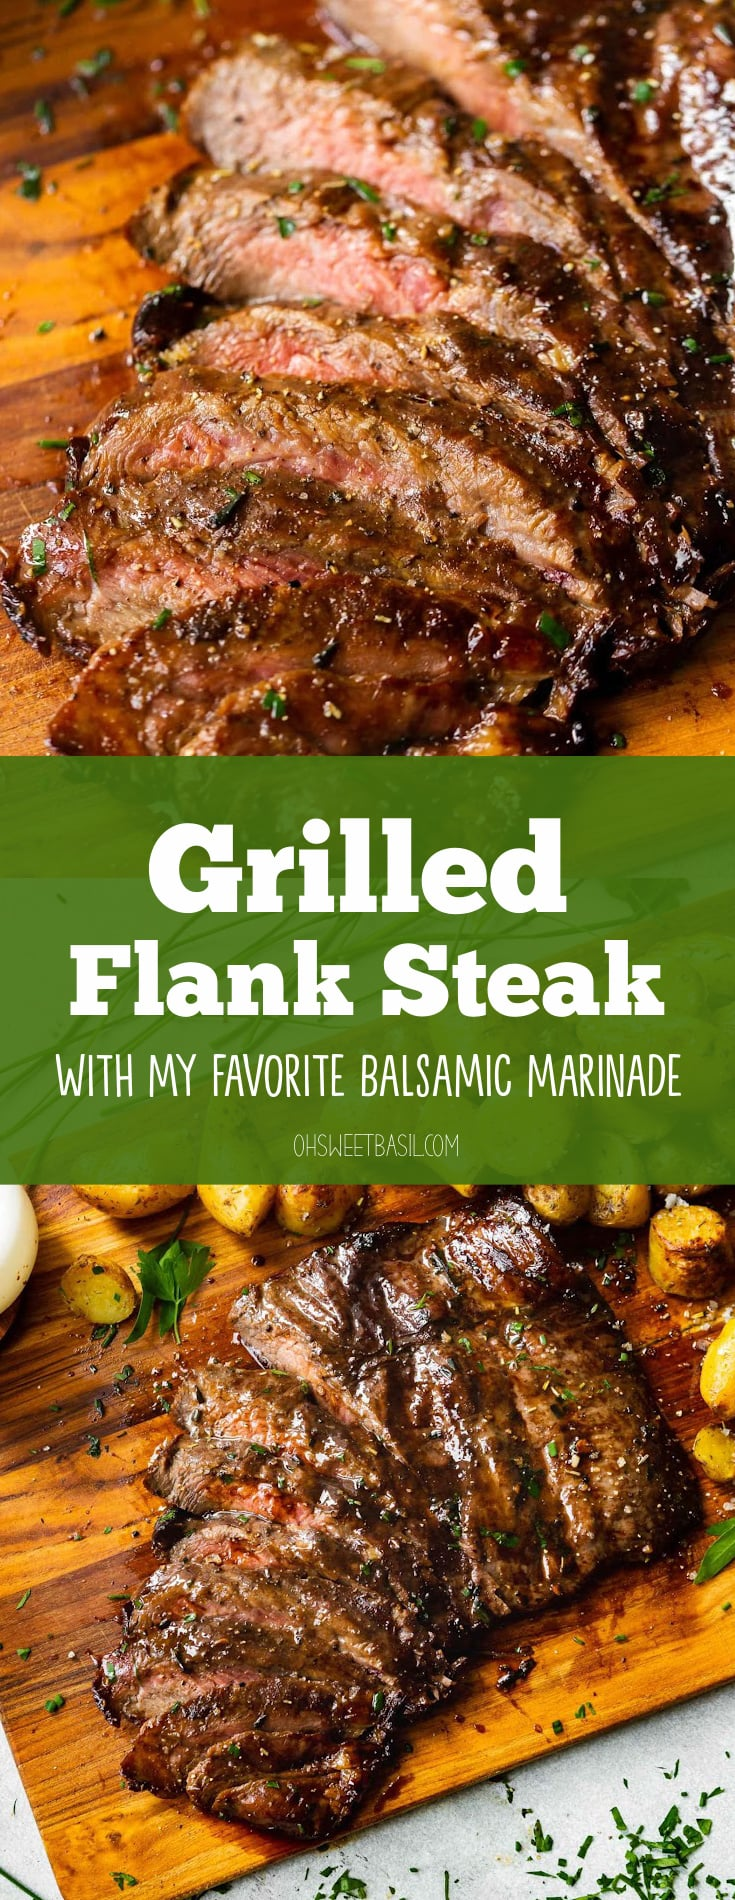 a cutting board with roasted yukon gold potatoes and sliced grilled flank steak with a delicious marinade